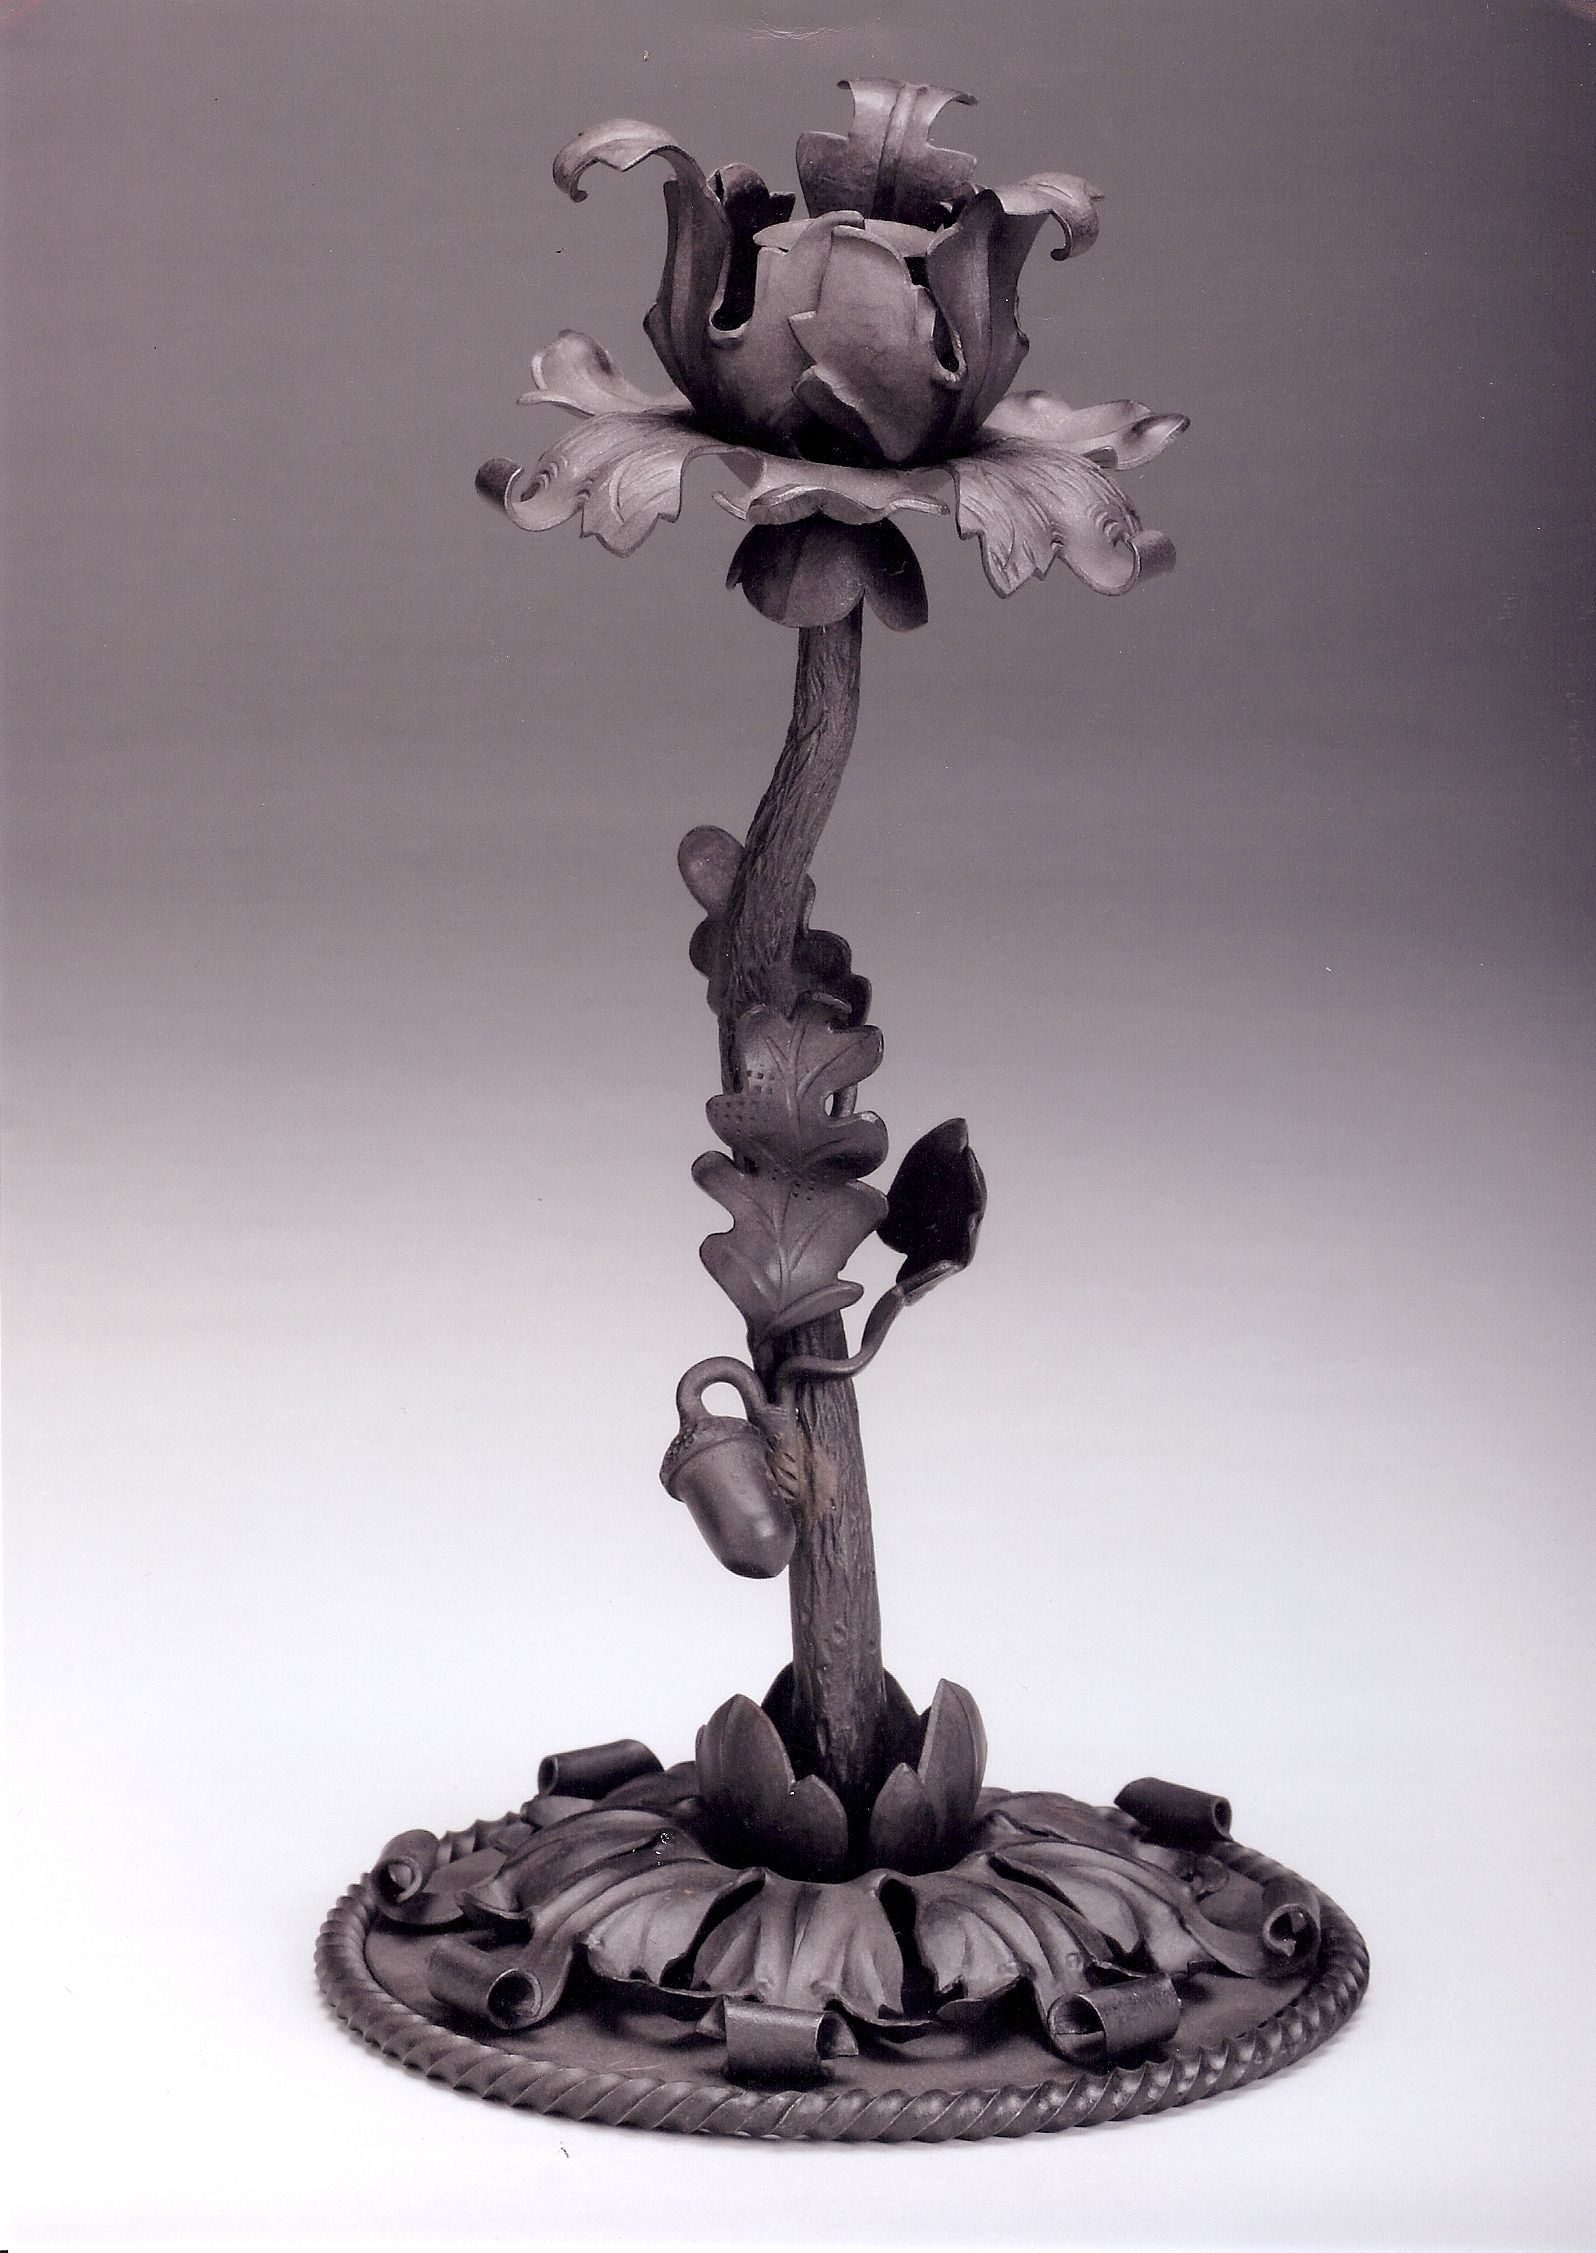 Candlestick. Based on motifs from the Pabst Mnsion Chandelier. Artist's collection.